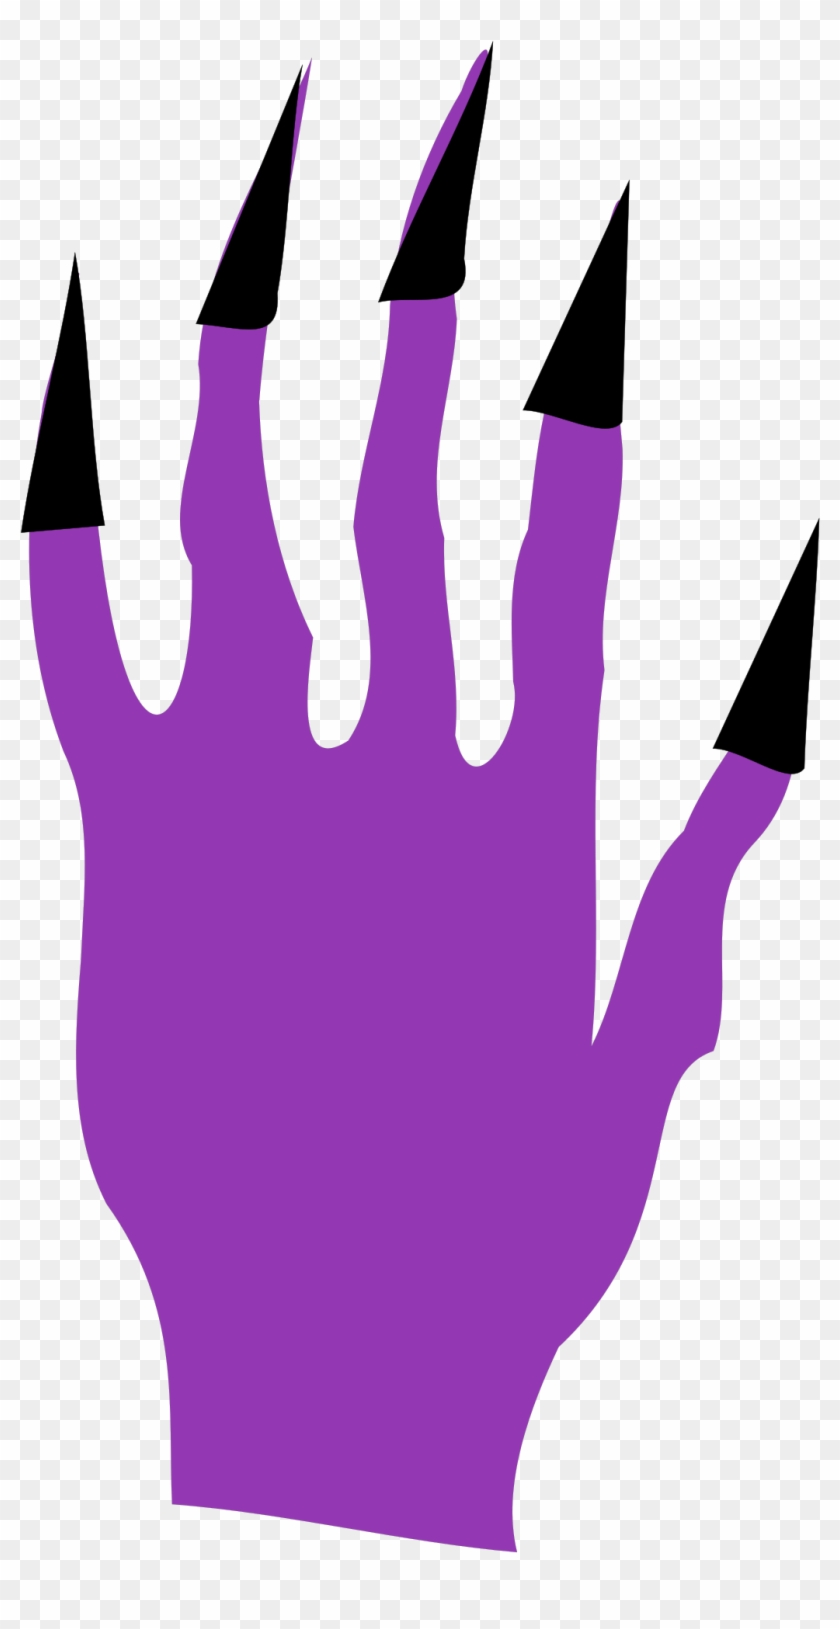 Halloween Nails Png Images - Clip Art Witch Fingers #135622